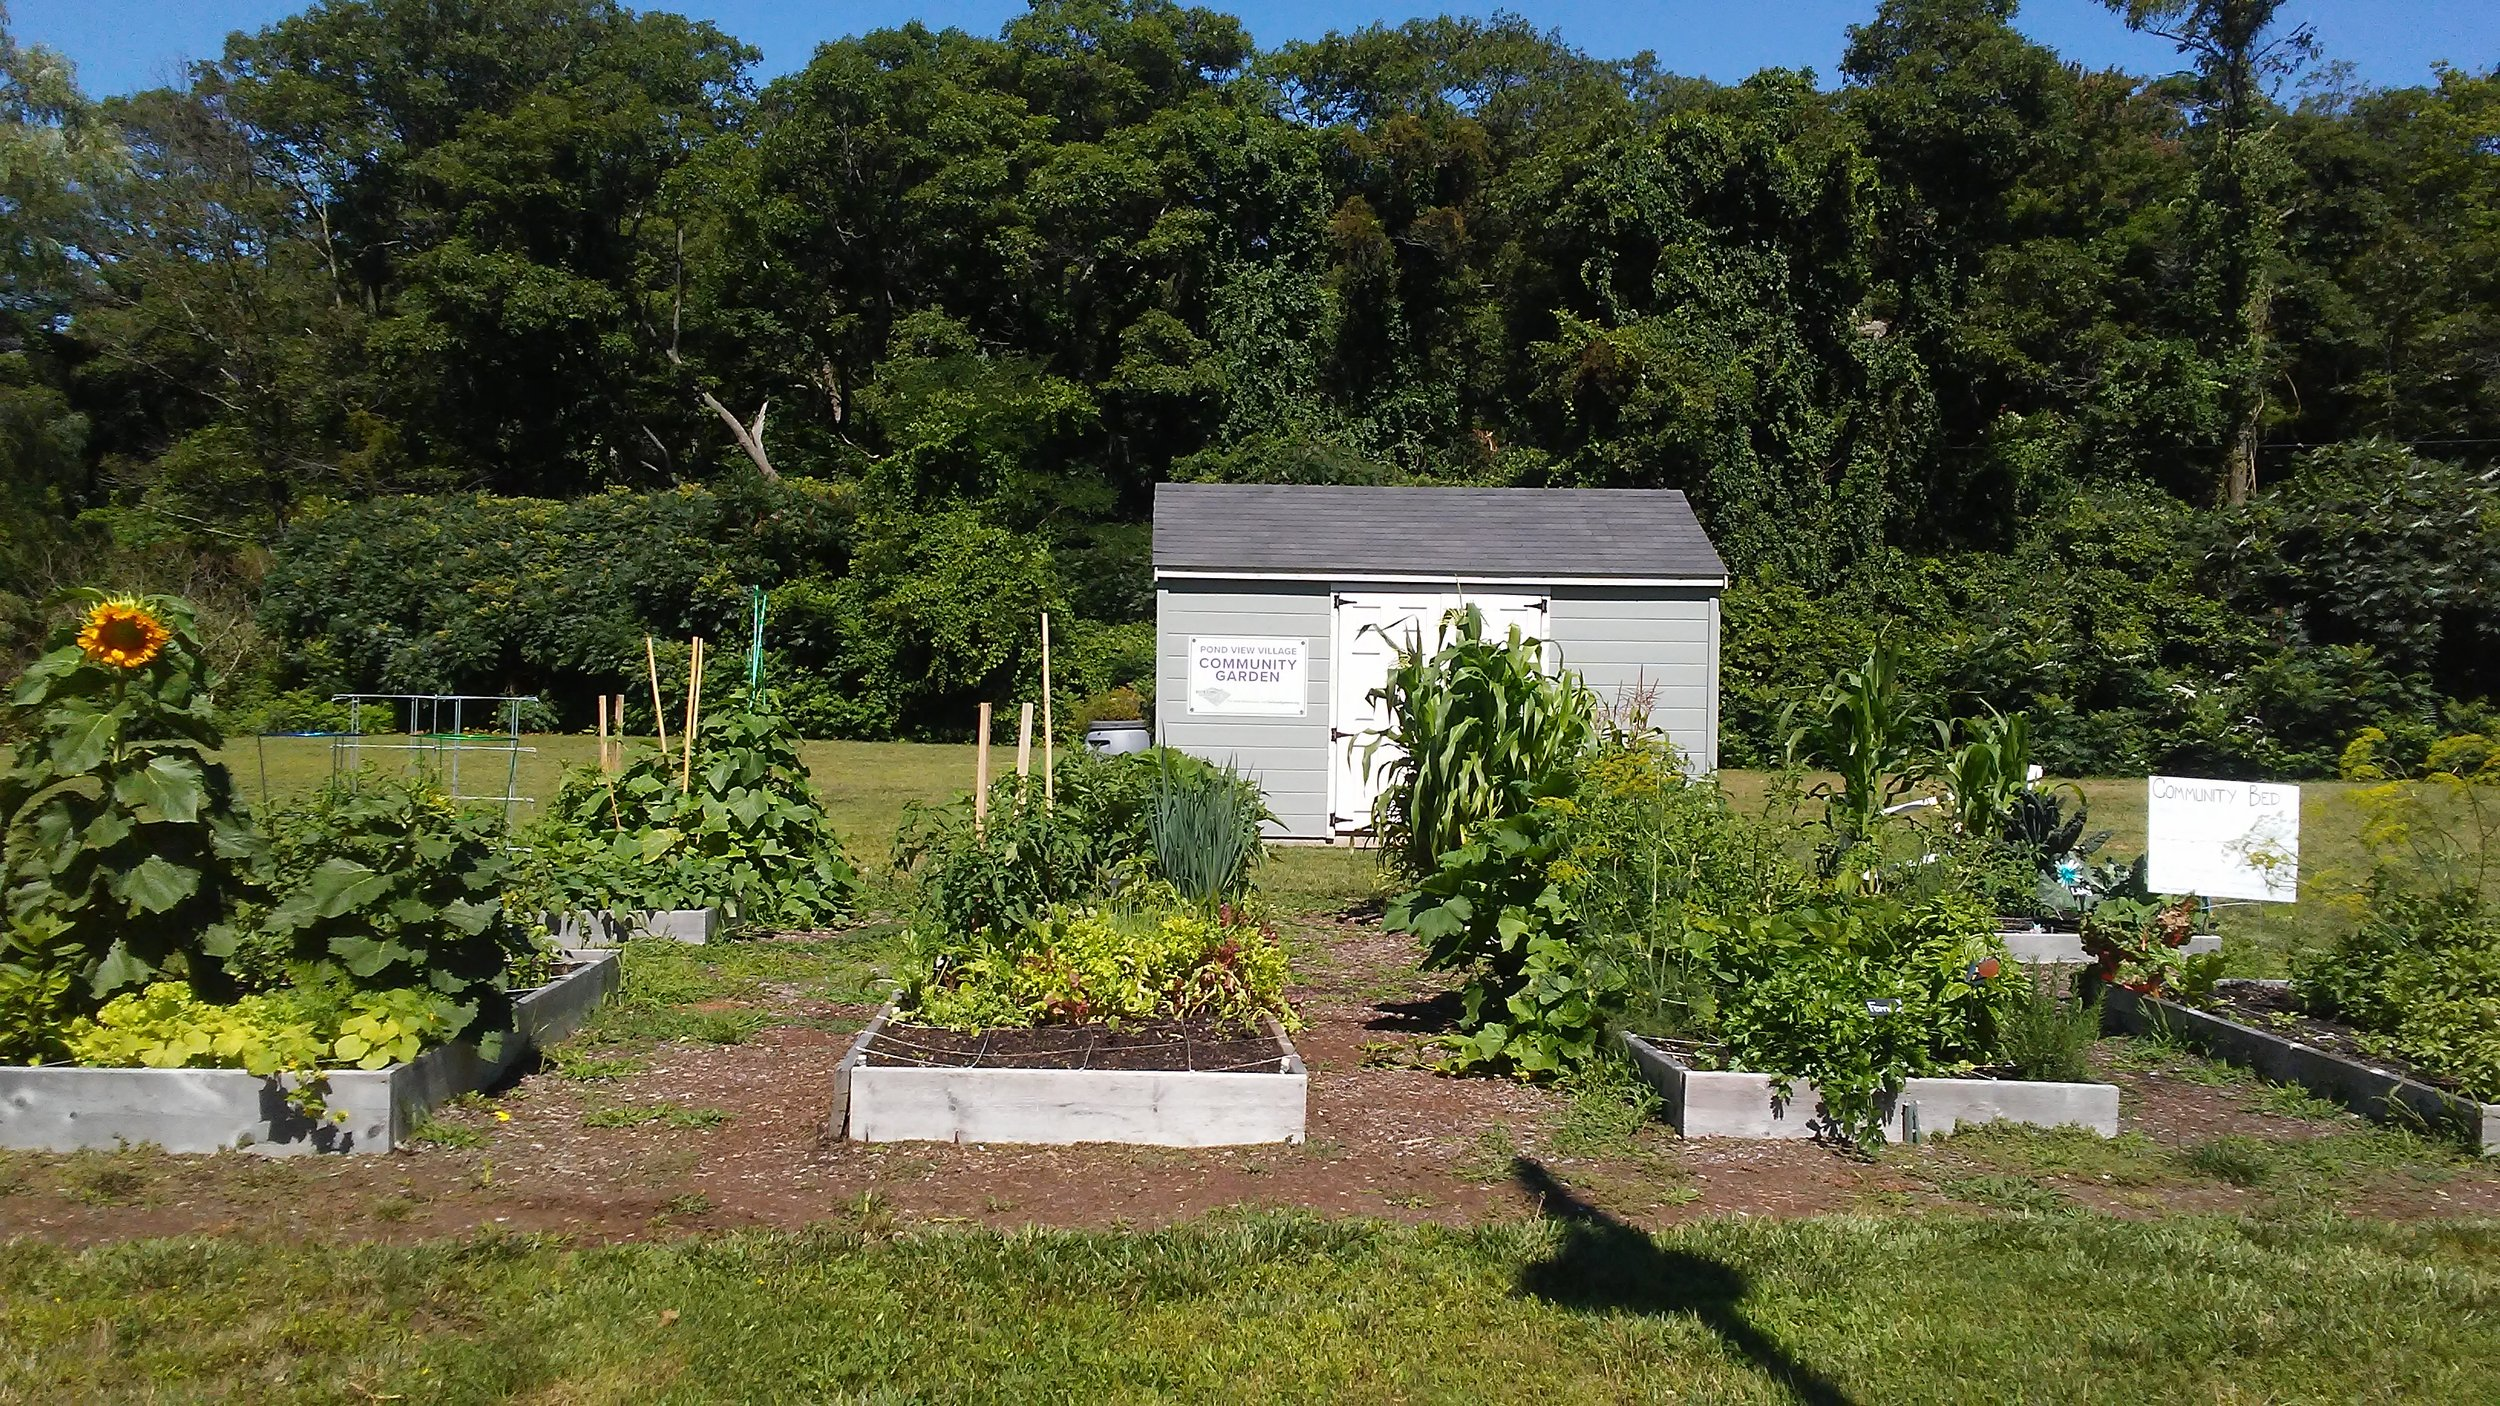 Pond View Community Garden